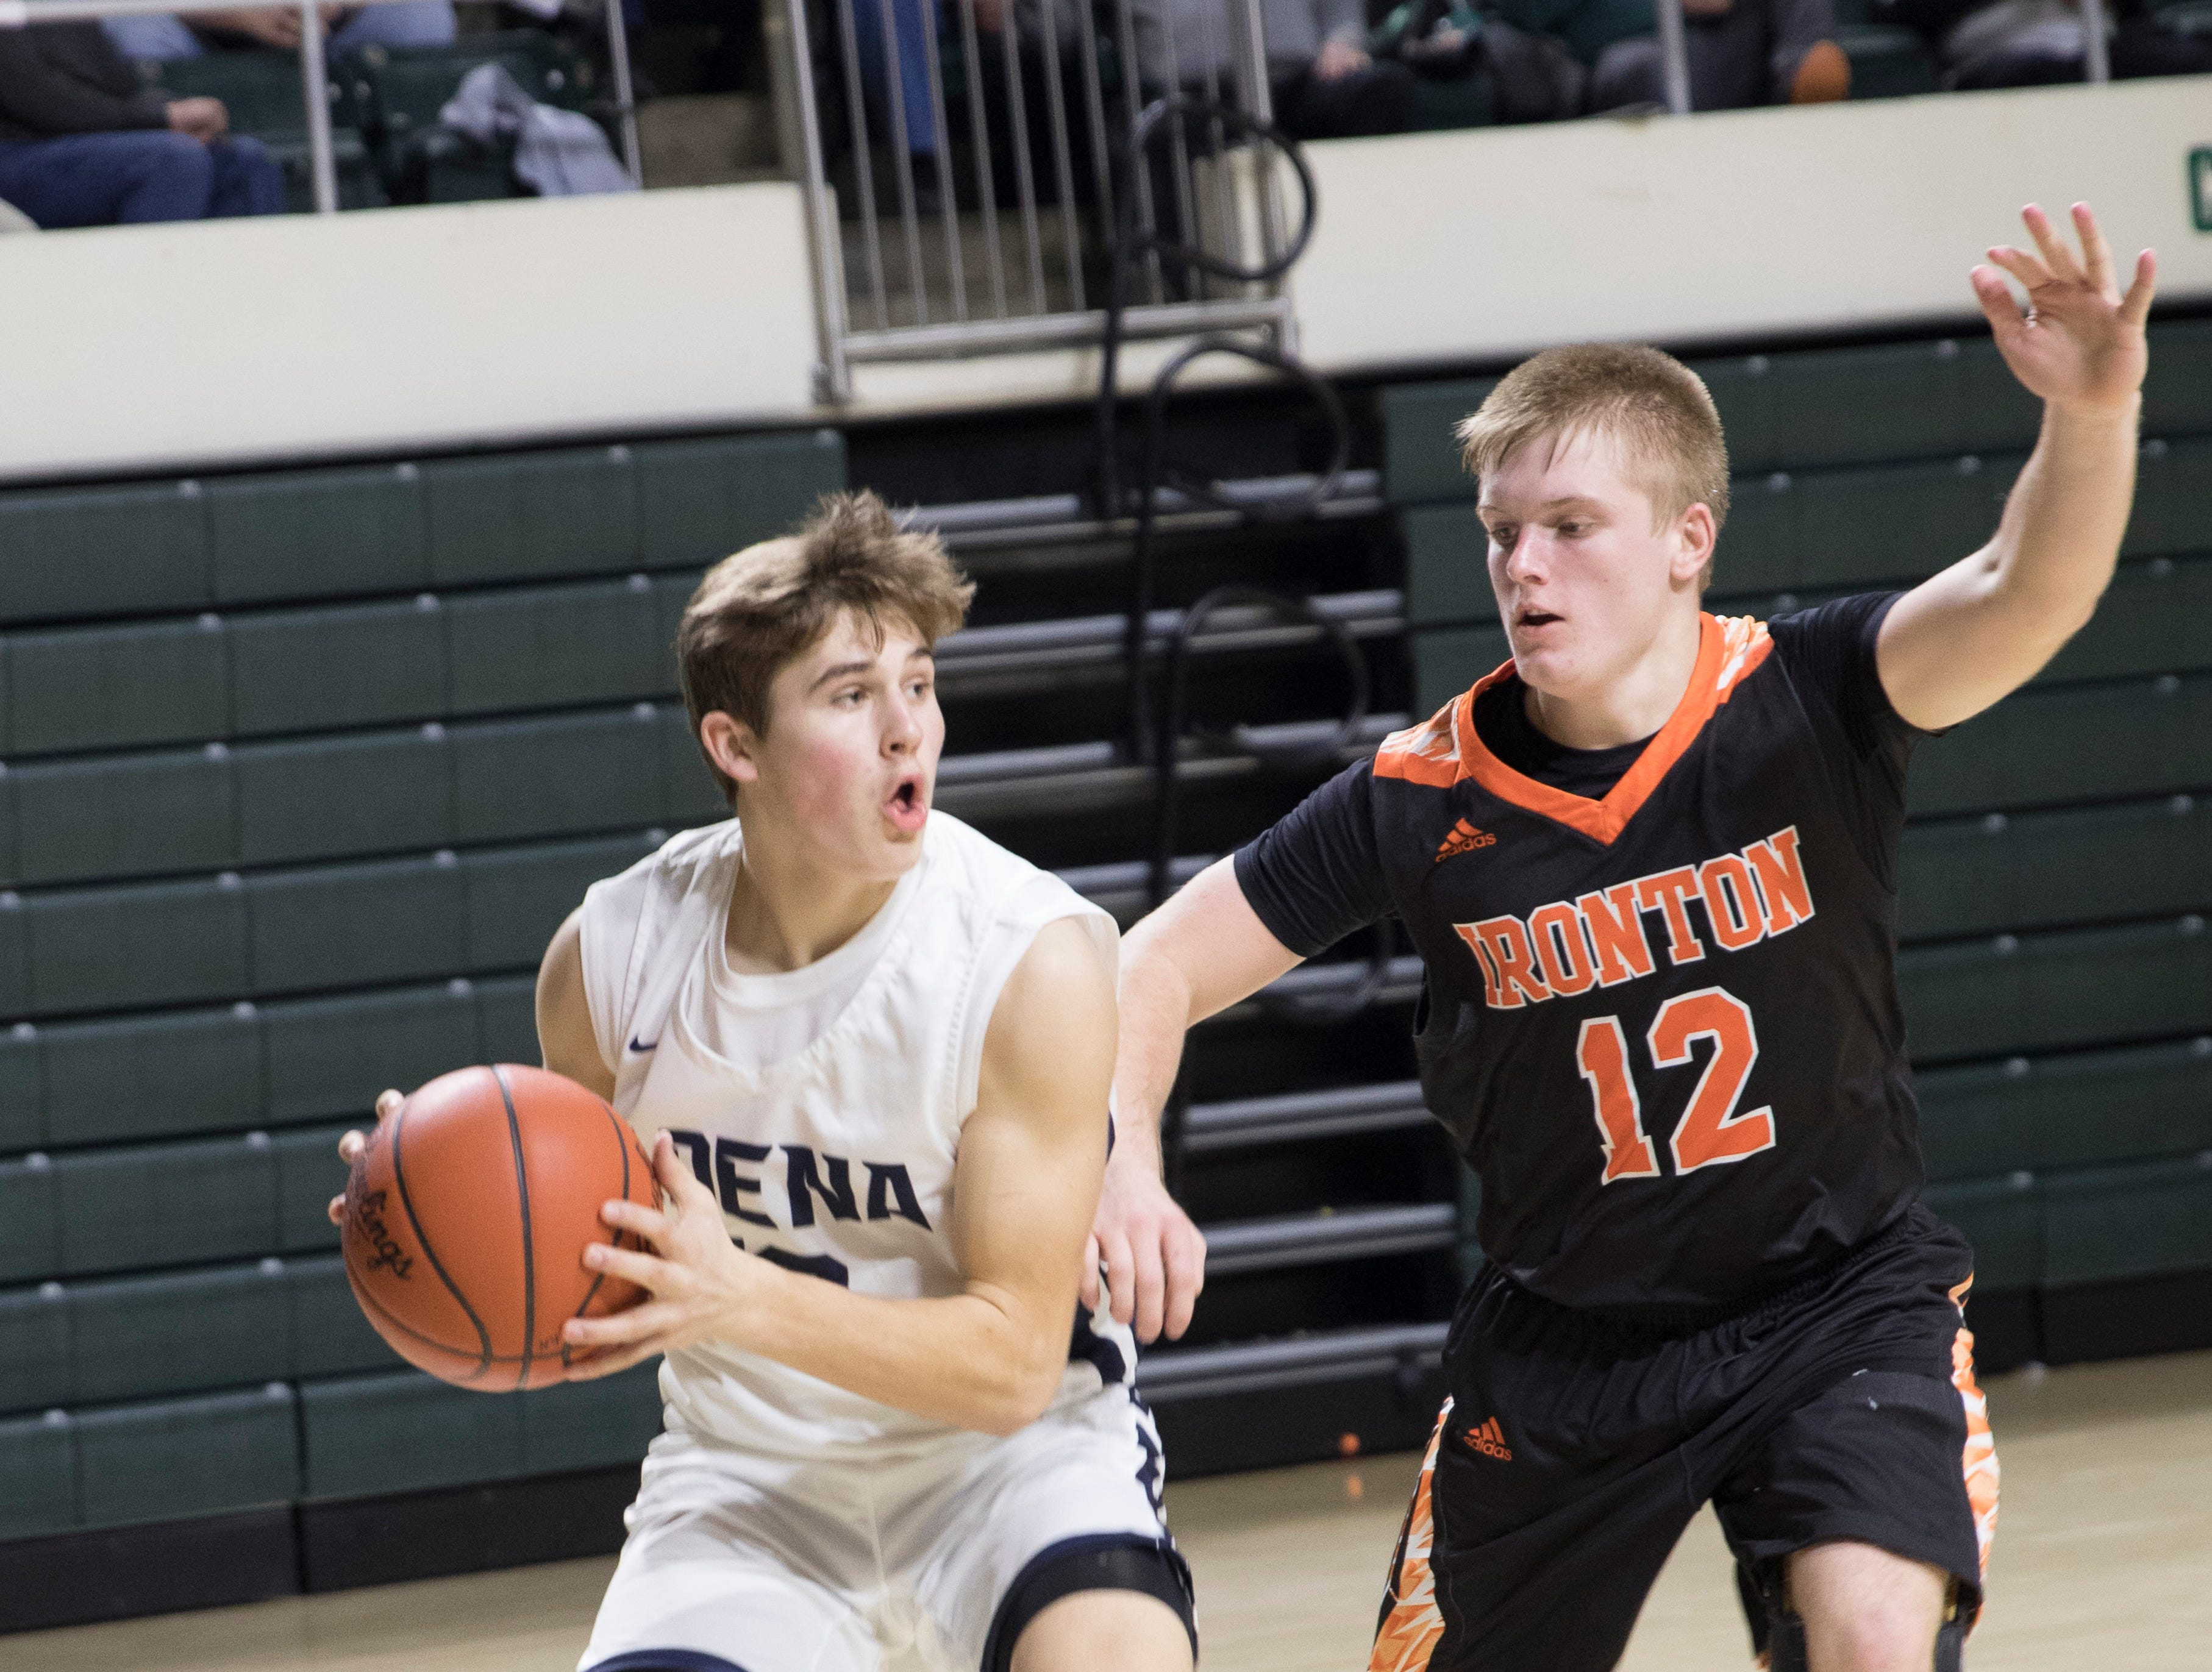 The Adena Warriors defeated the Ironton Fighting Tigers Saturday night in a Division III district semifinal game at Ohio University's Convocation Center in Athens, Ohio, on March 2, 2019. The Warriors will go on to play in a district final on Saturday, March 9, 2019.